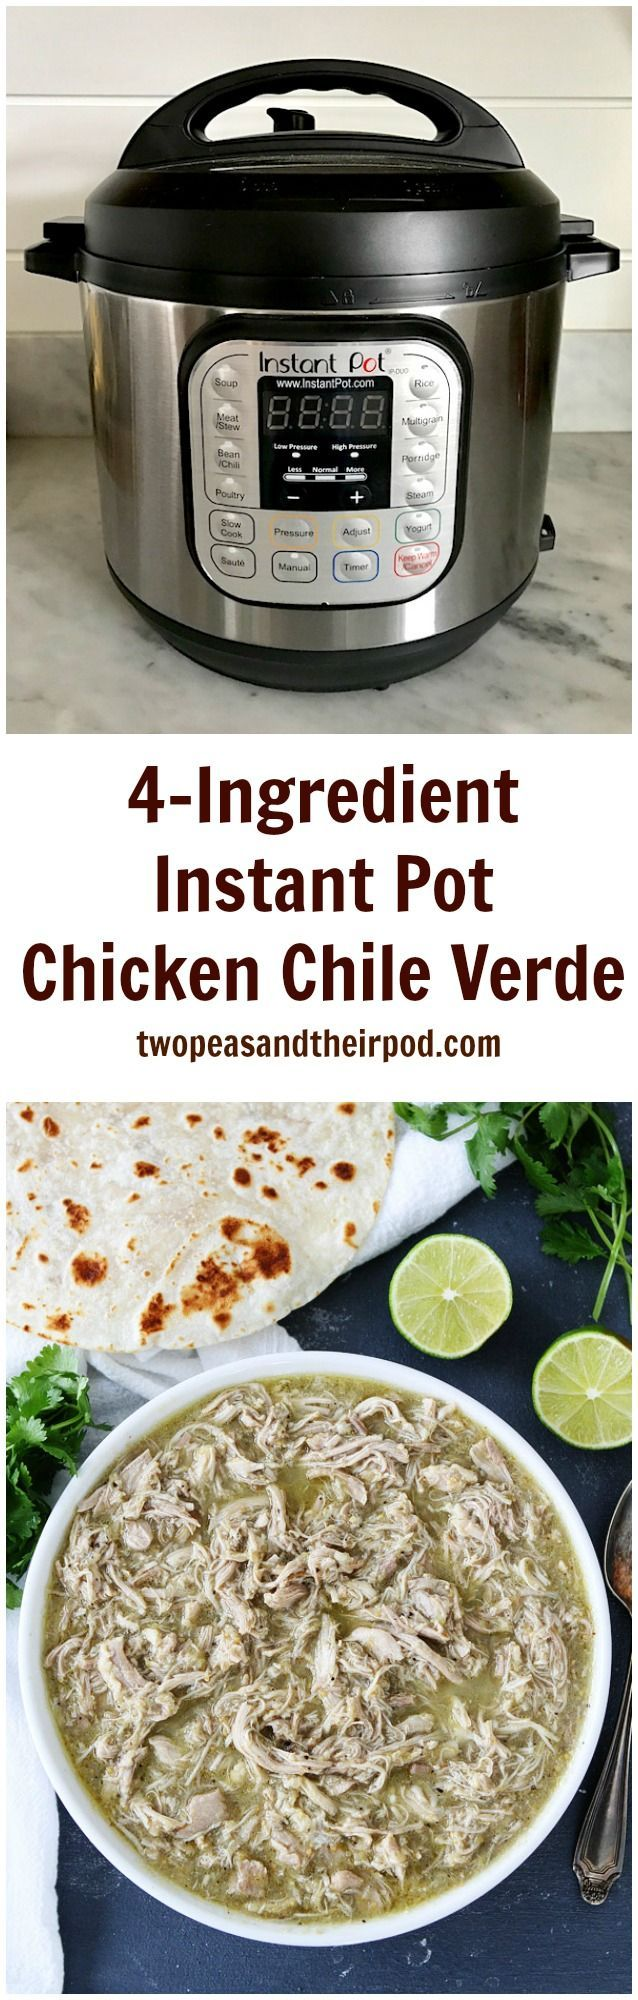 4-Ingredient Instant Pot Chicken Chile Verde Recipe on http://twopeasandtheirpod.com This is the easiest Instant Pot recipe! You only need 5 ingredients and 25 minutes to make this delicious chicken. It is great with rice or you can make tacos, burritos, quesadillas, salads, etc! The perfect weeknight meal!